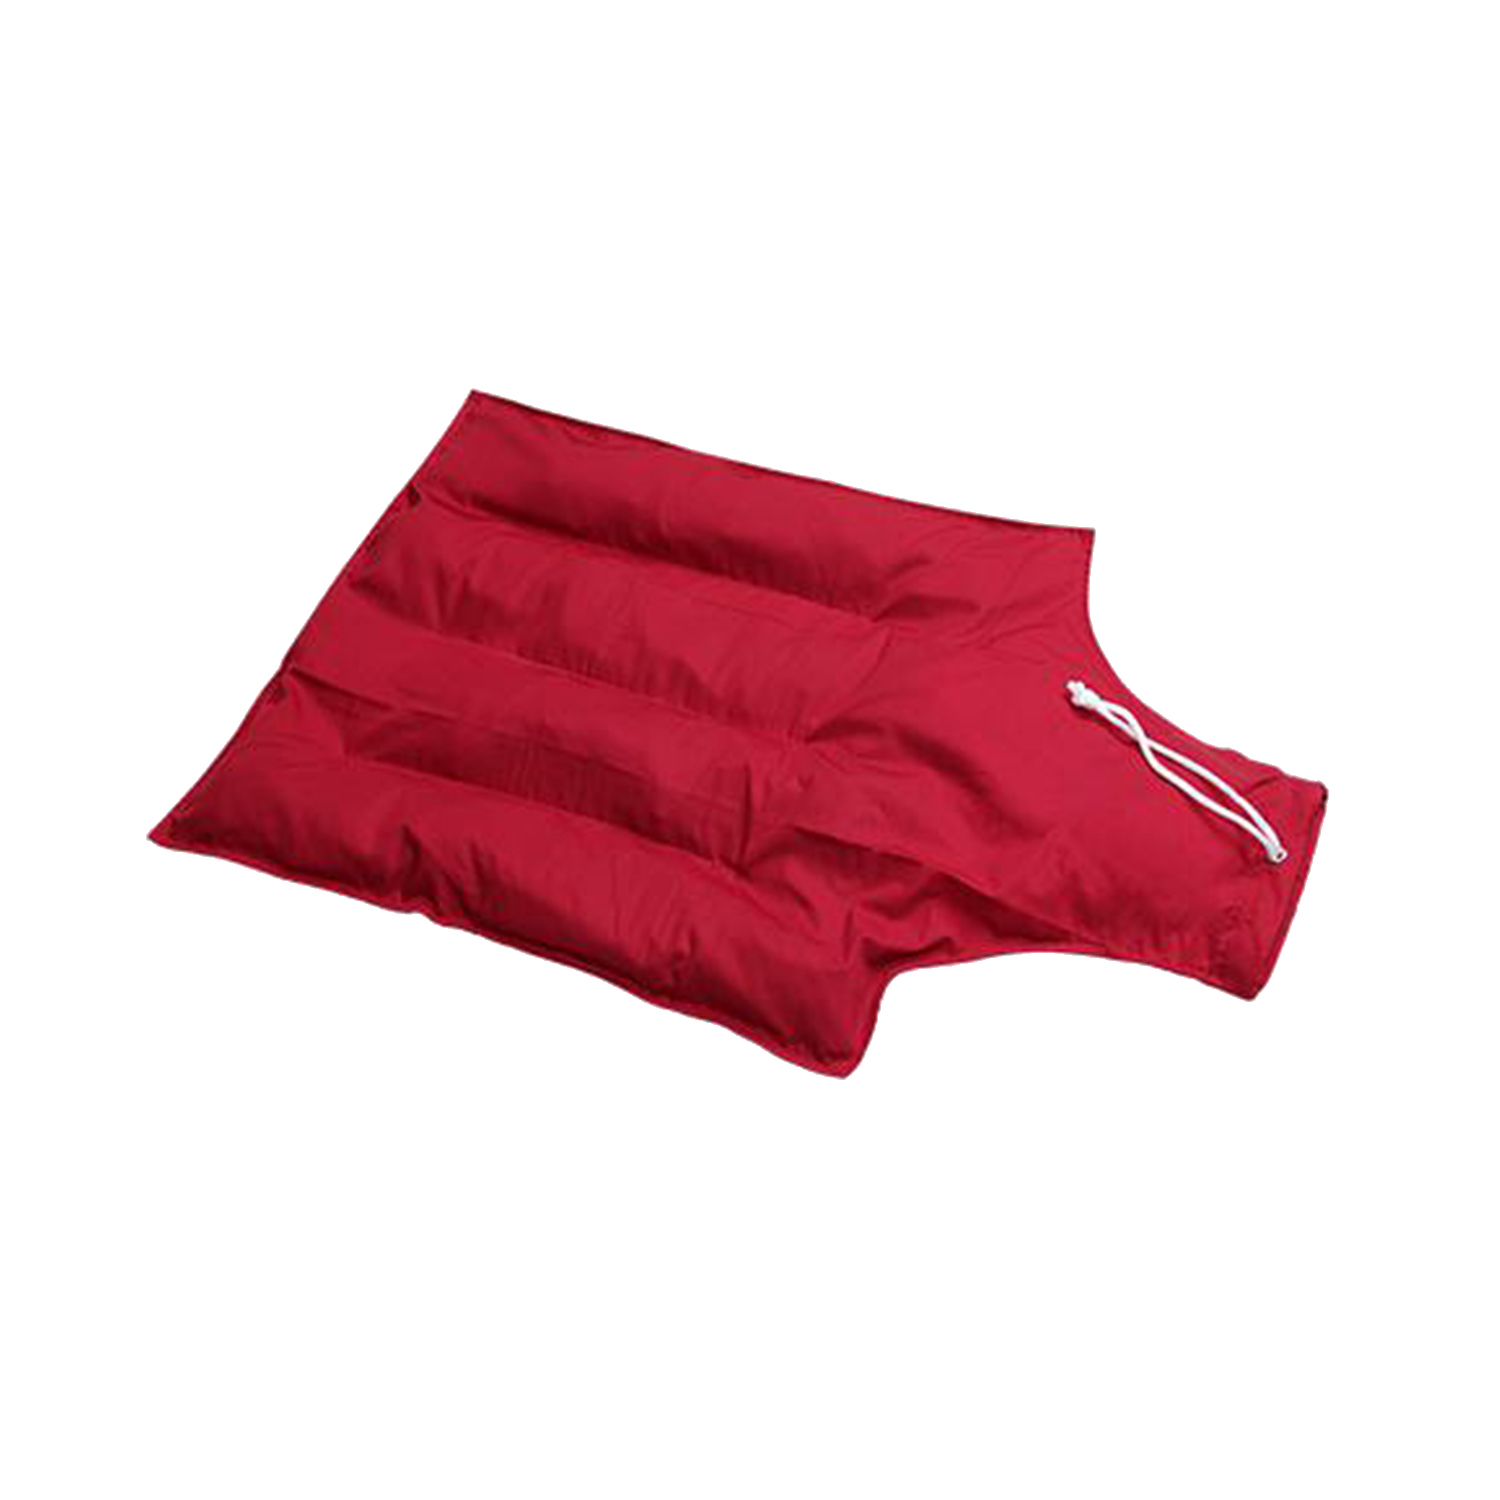 Washable Warming Blankets